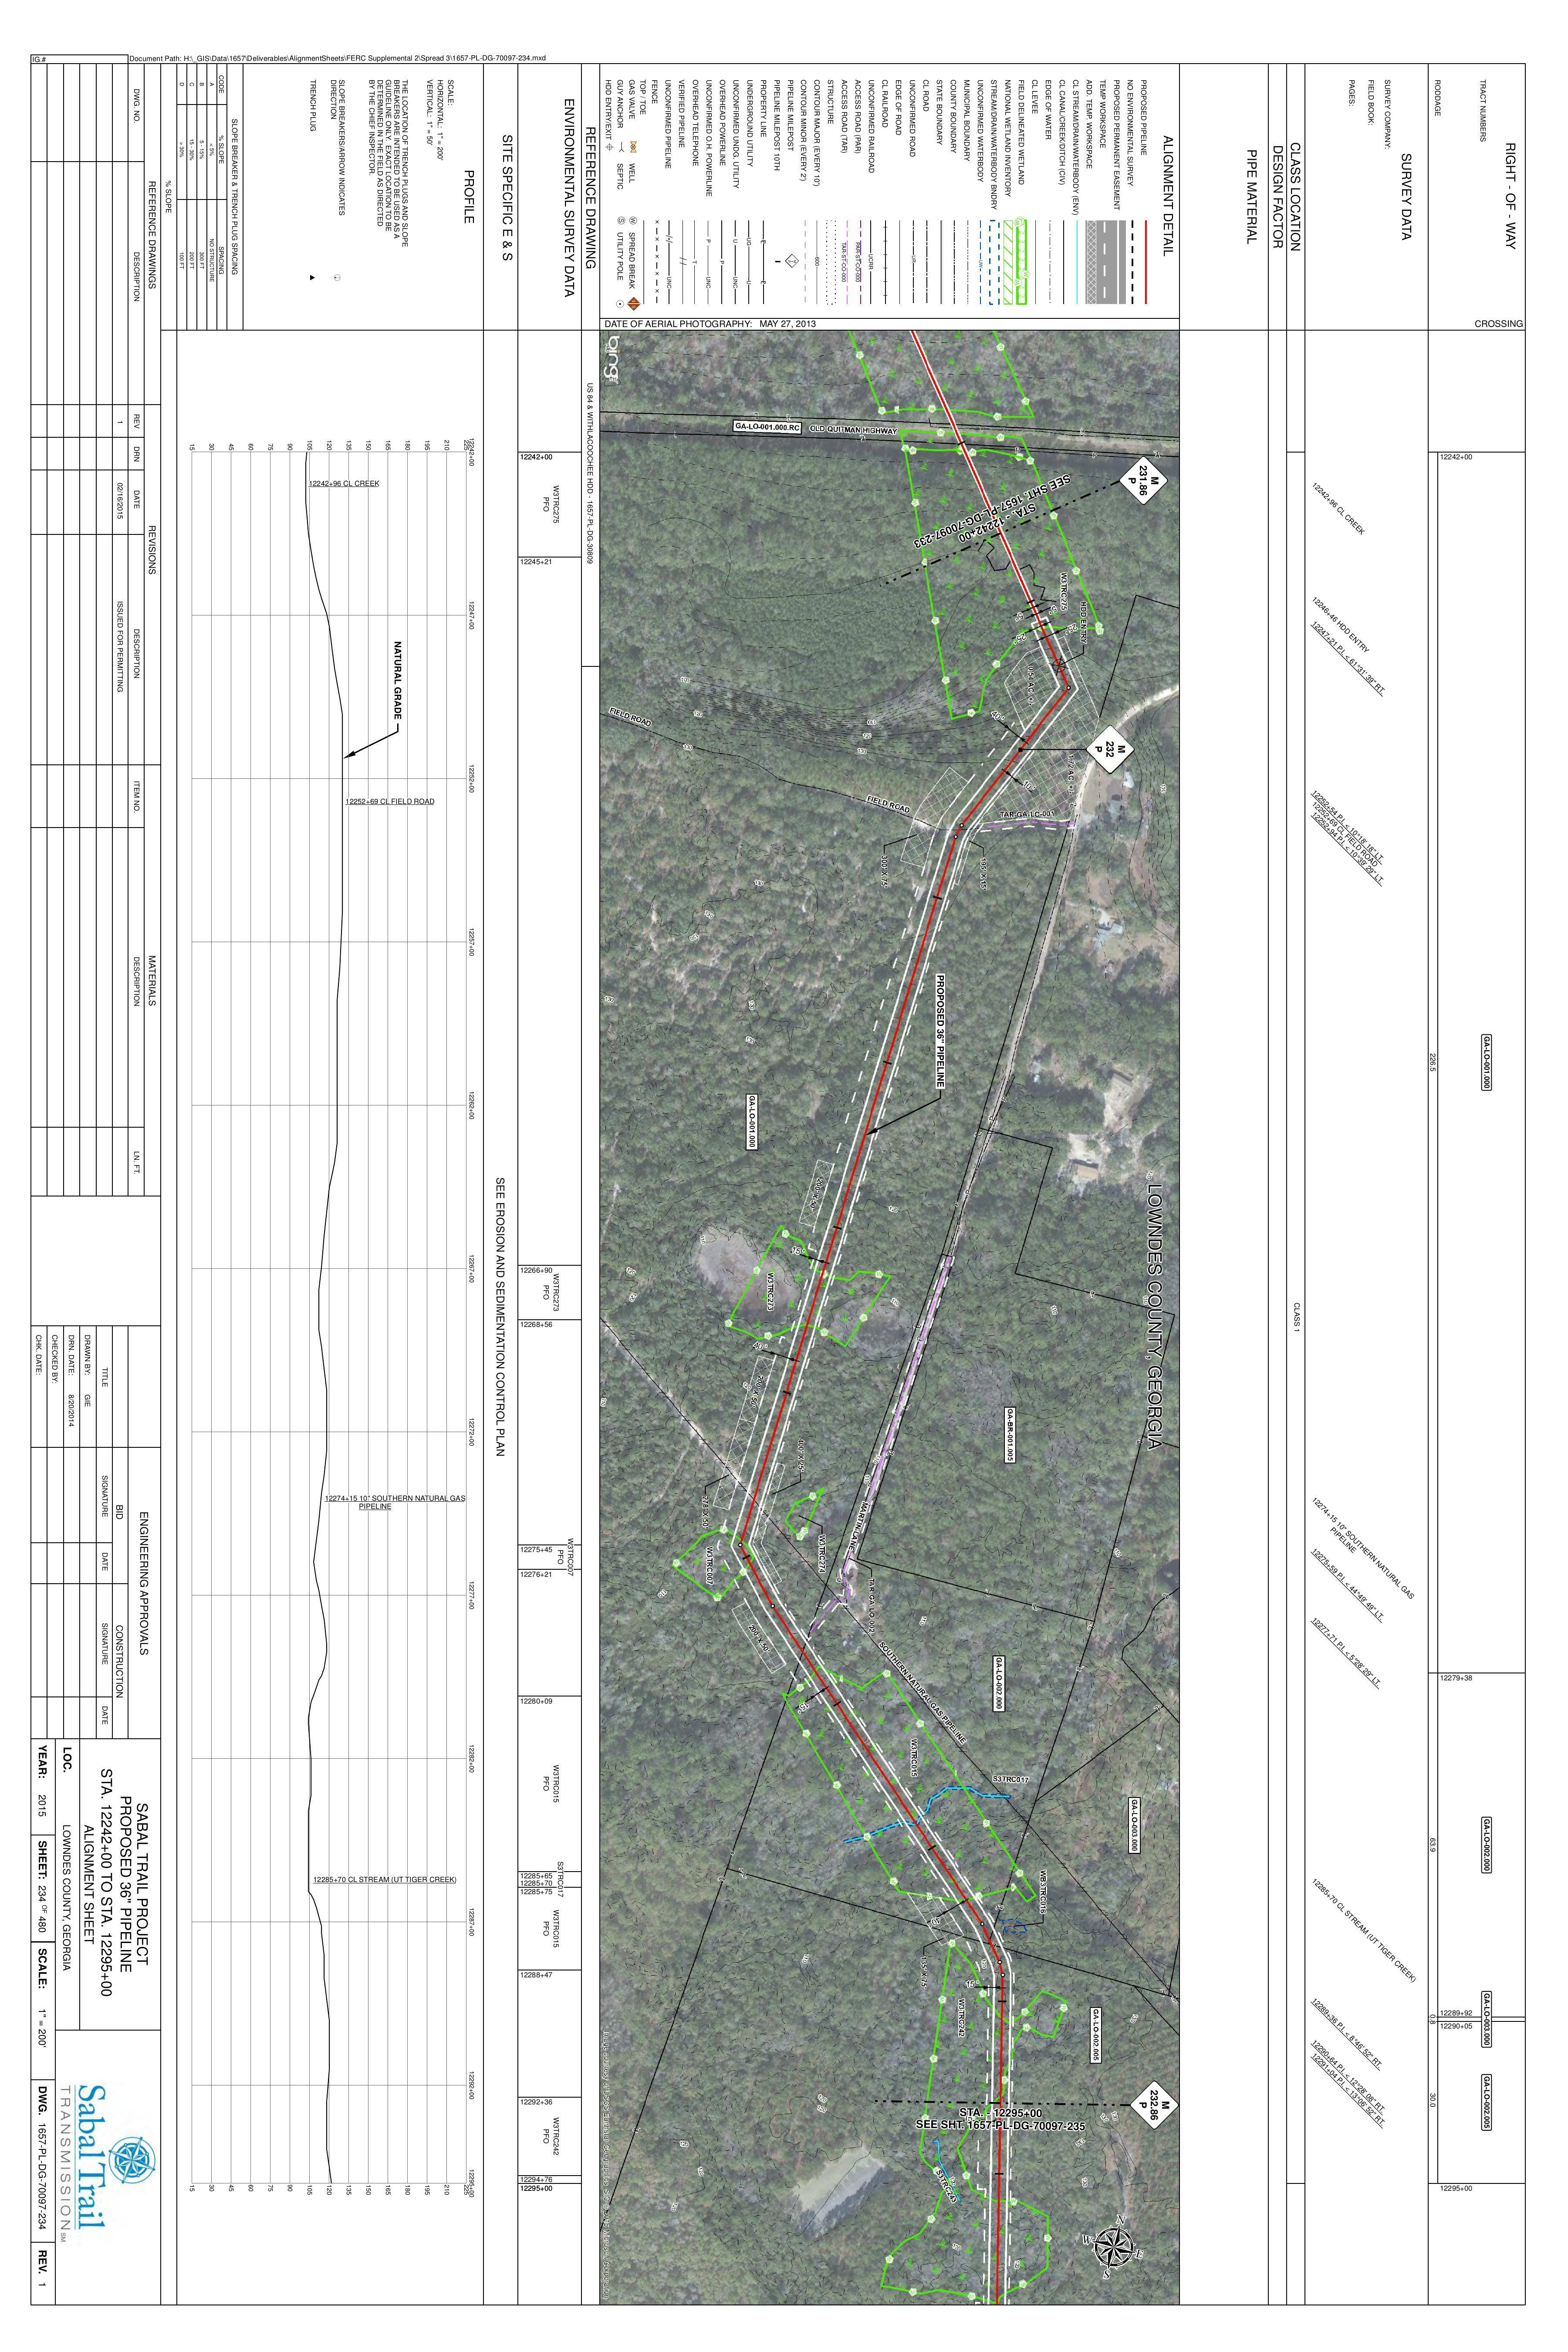 3600x5400 STA. 12242+00 TO STA. 12295+00, Martin Lane, Tiger Creek, in Lowndes County, GA, by Sabal Trail Transmission, for WWALS.net, 14 August 2015